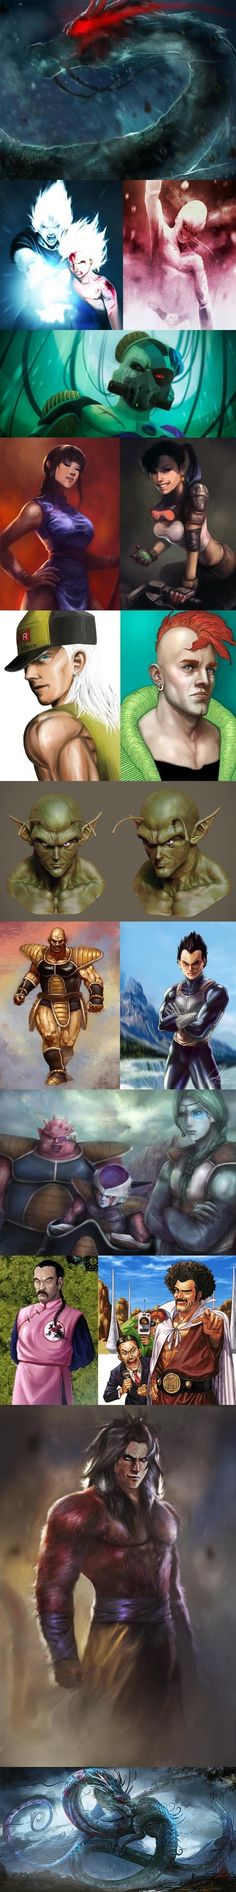 Dragon Ball Z Realistic Art // funny pictures - funny photos - funny images - funny pics - funny quotes - #lol #humor #funnypictures